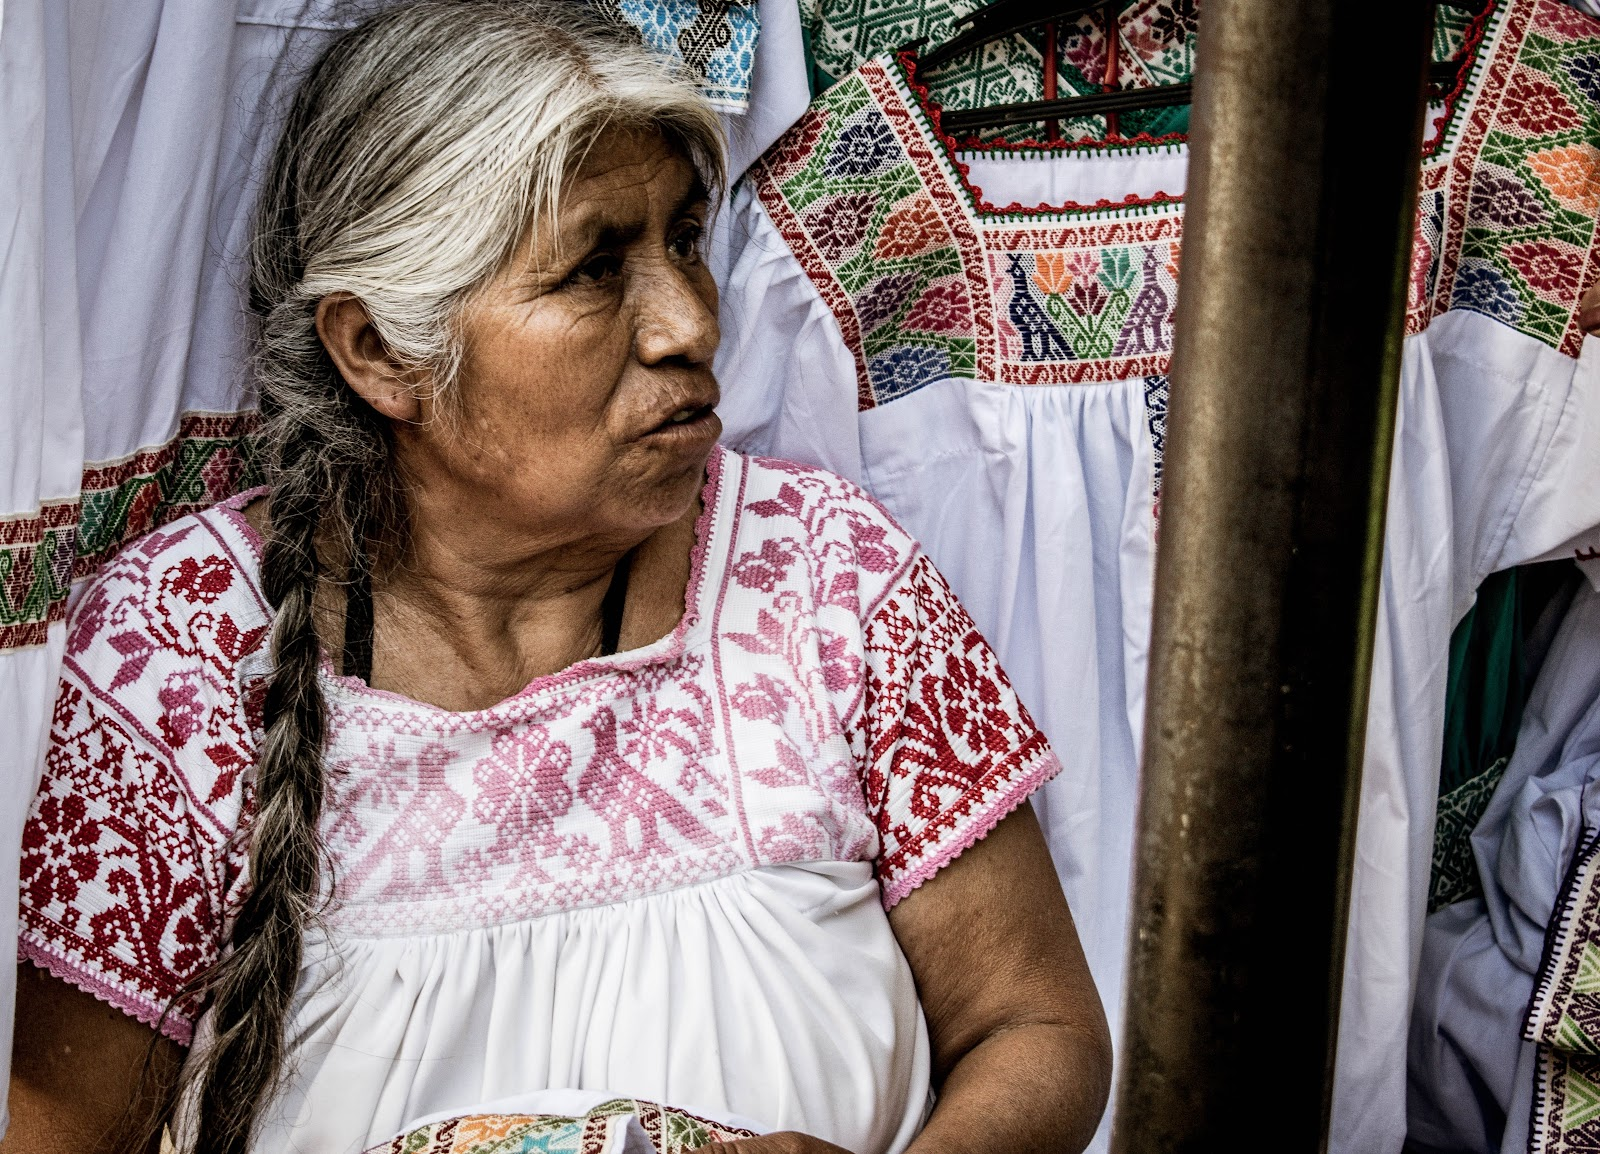 A Mexican woman wearing traditional clothing.